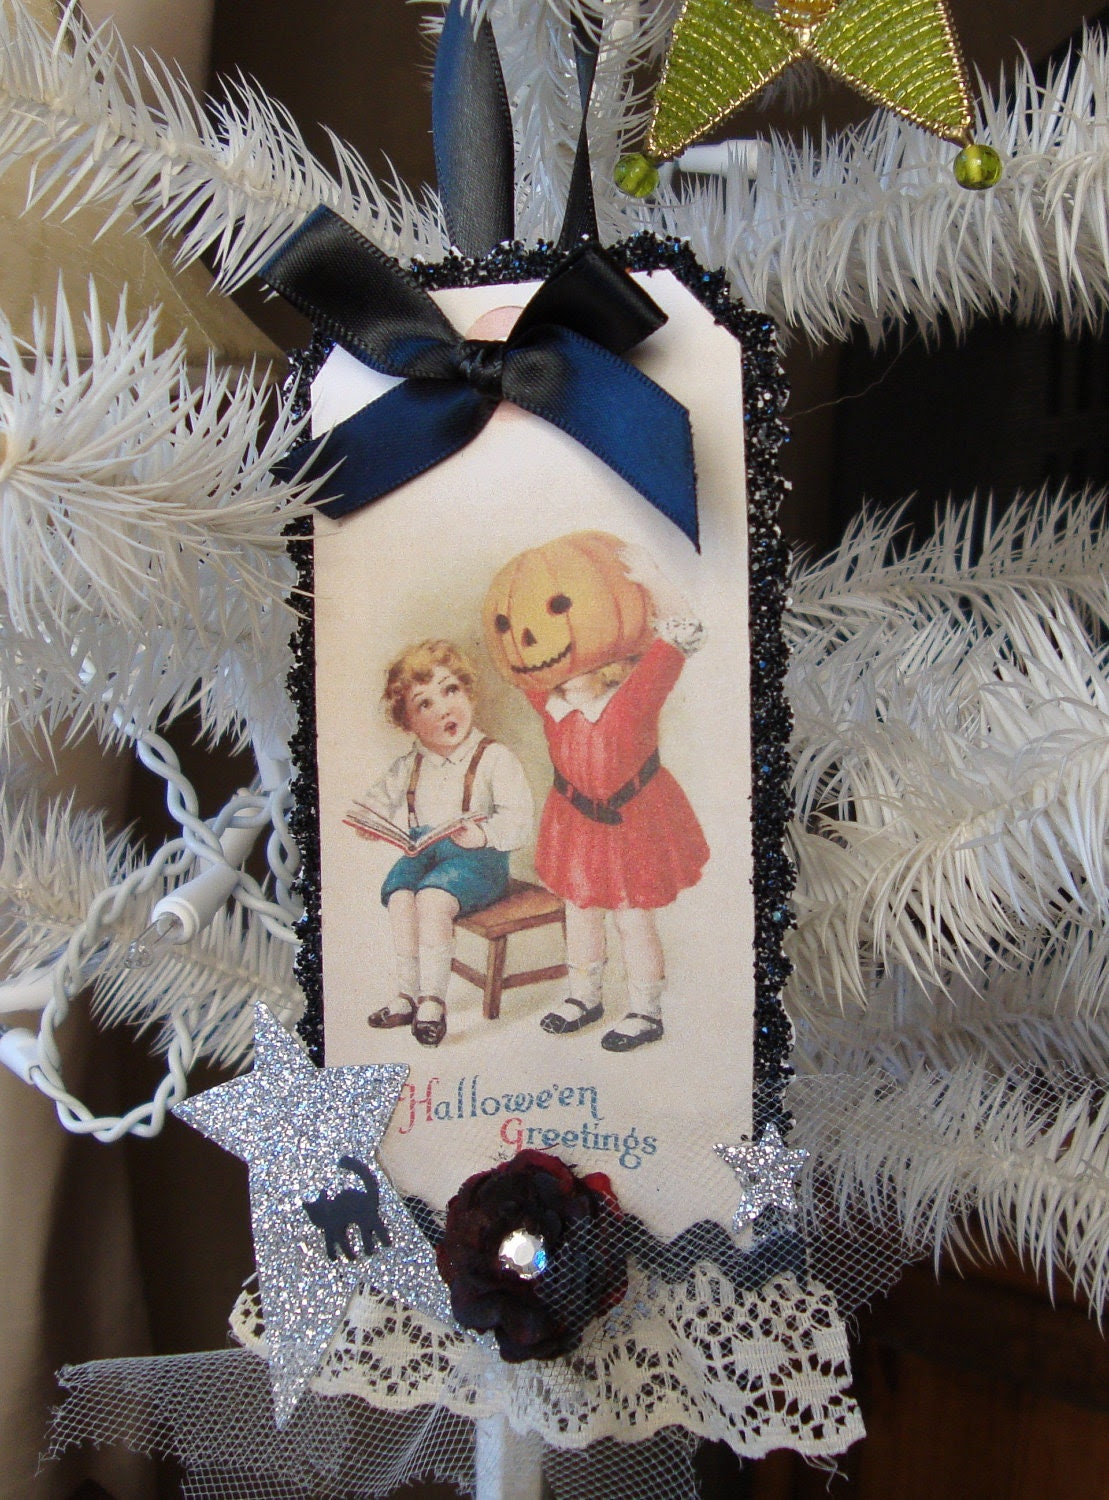 Vintage style black glittered Halloween altered tag ornament with little boy and girl